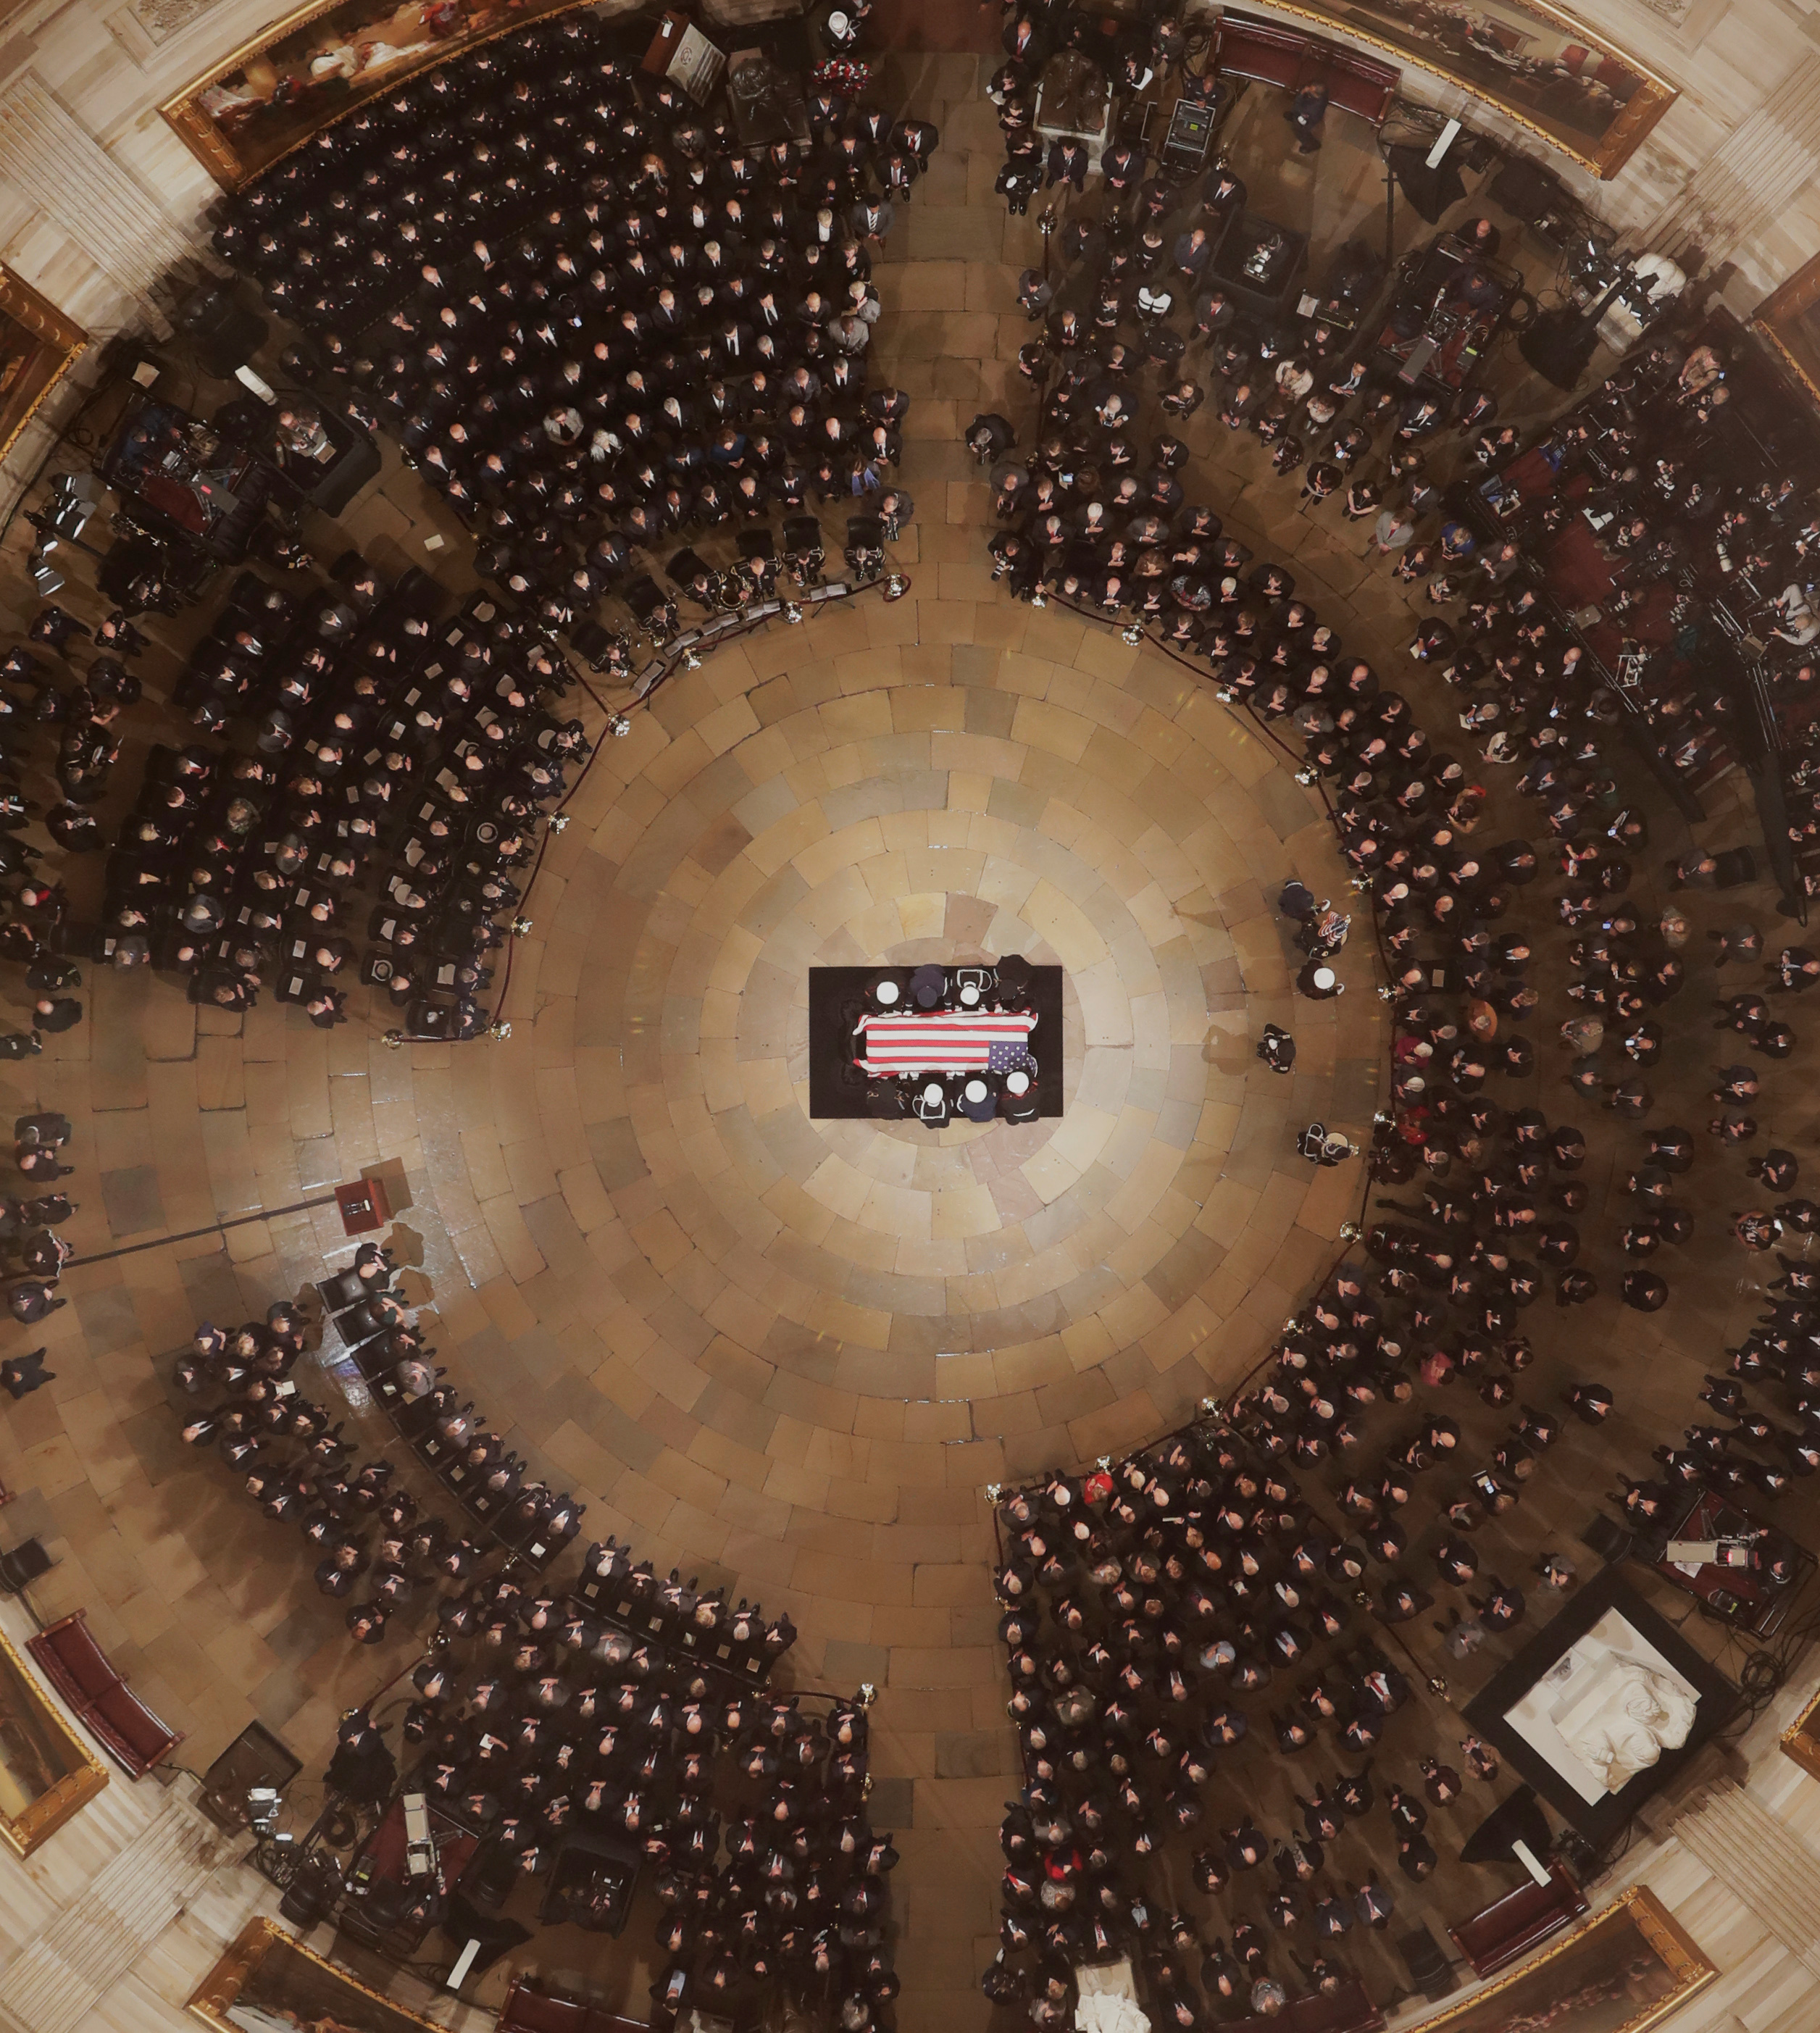 Pallbearers carry the casket of Former President George H. W. Bush into the U.S. Capitol Rotunda Monday, Dec. 3, 2018, in Washington. (Morry Gash/Pool via REUTERS)